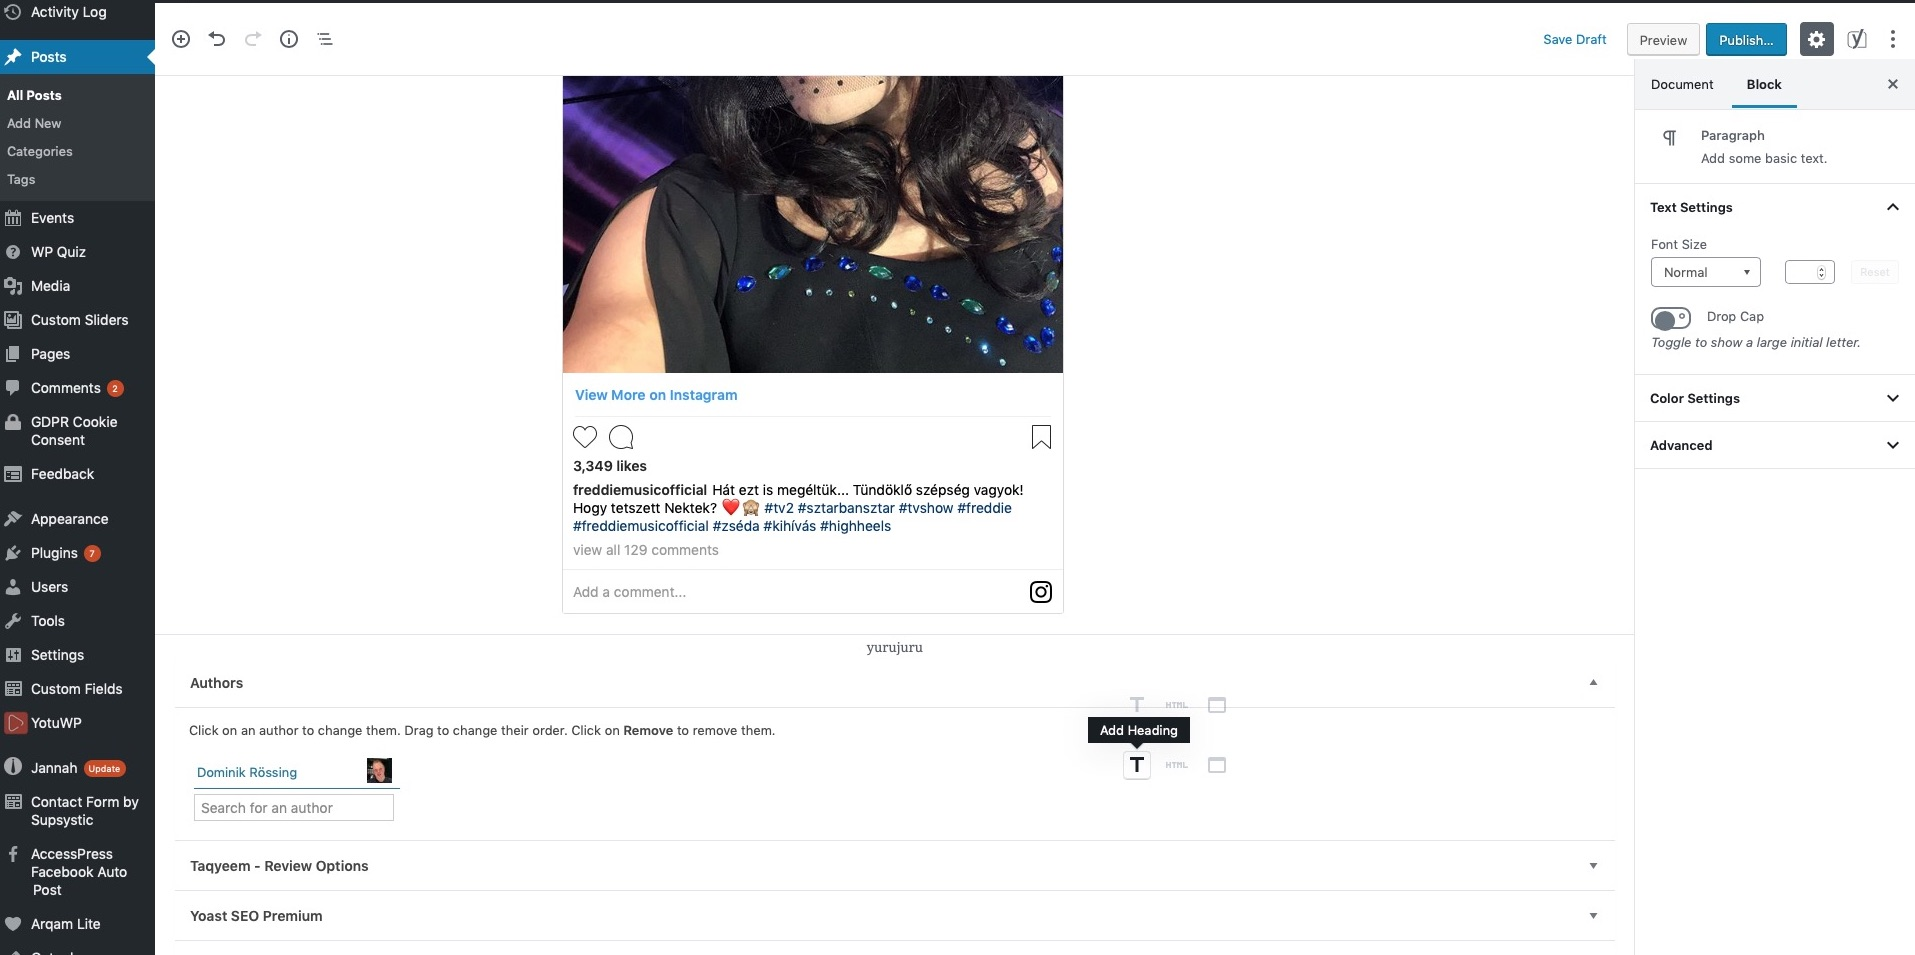 CSS Issues in editor when embedding Instagram · Issue #11337